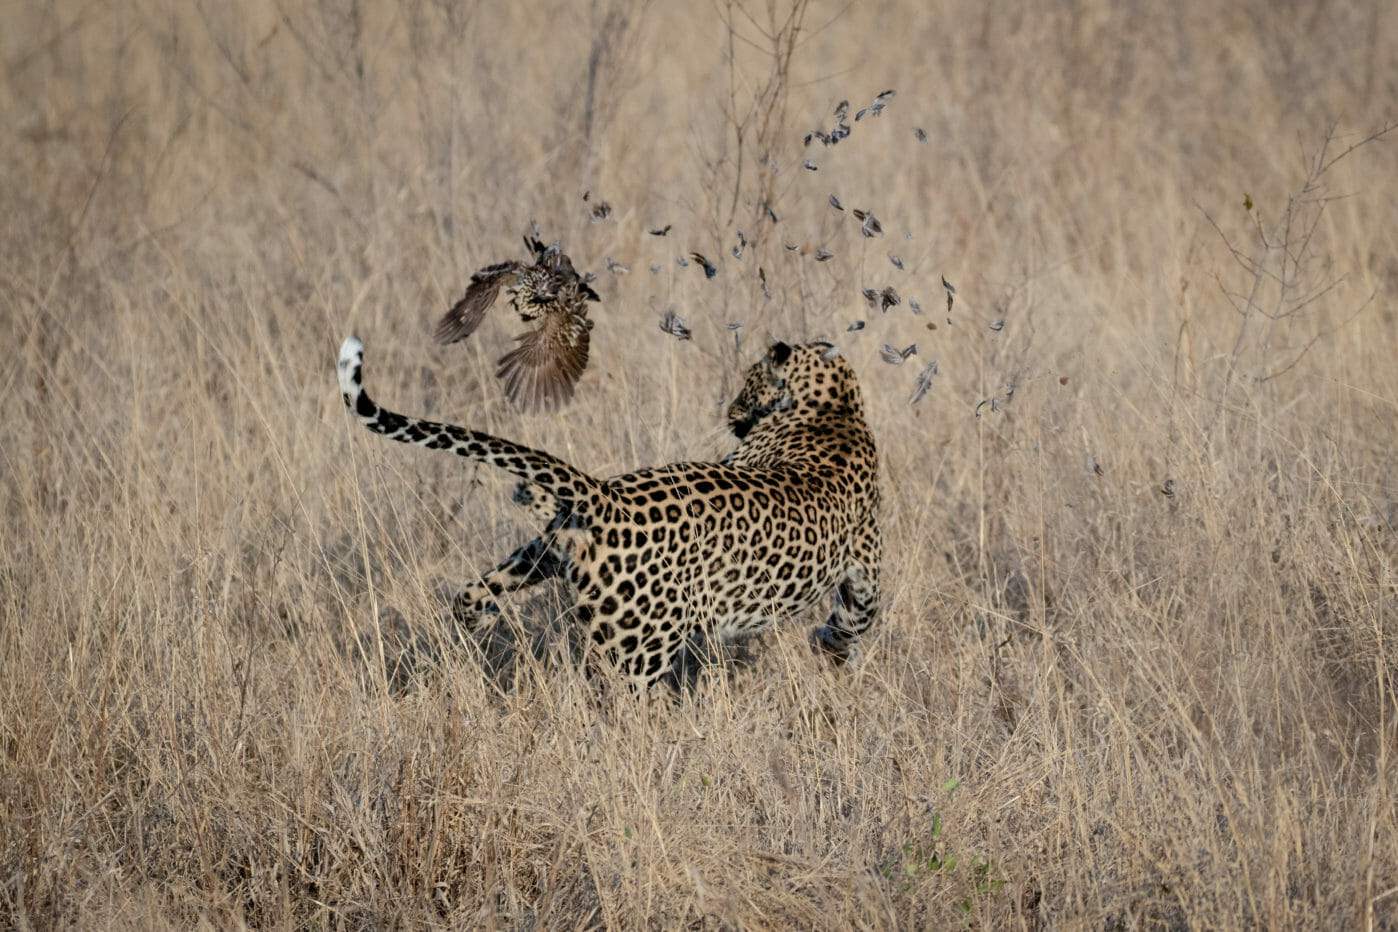 Leopard tries to catch a francolin and misses the bird at Londolozi